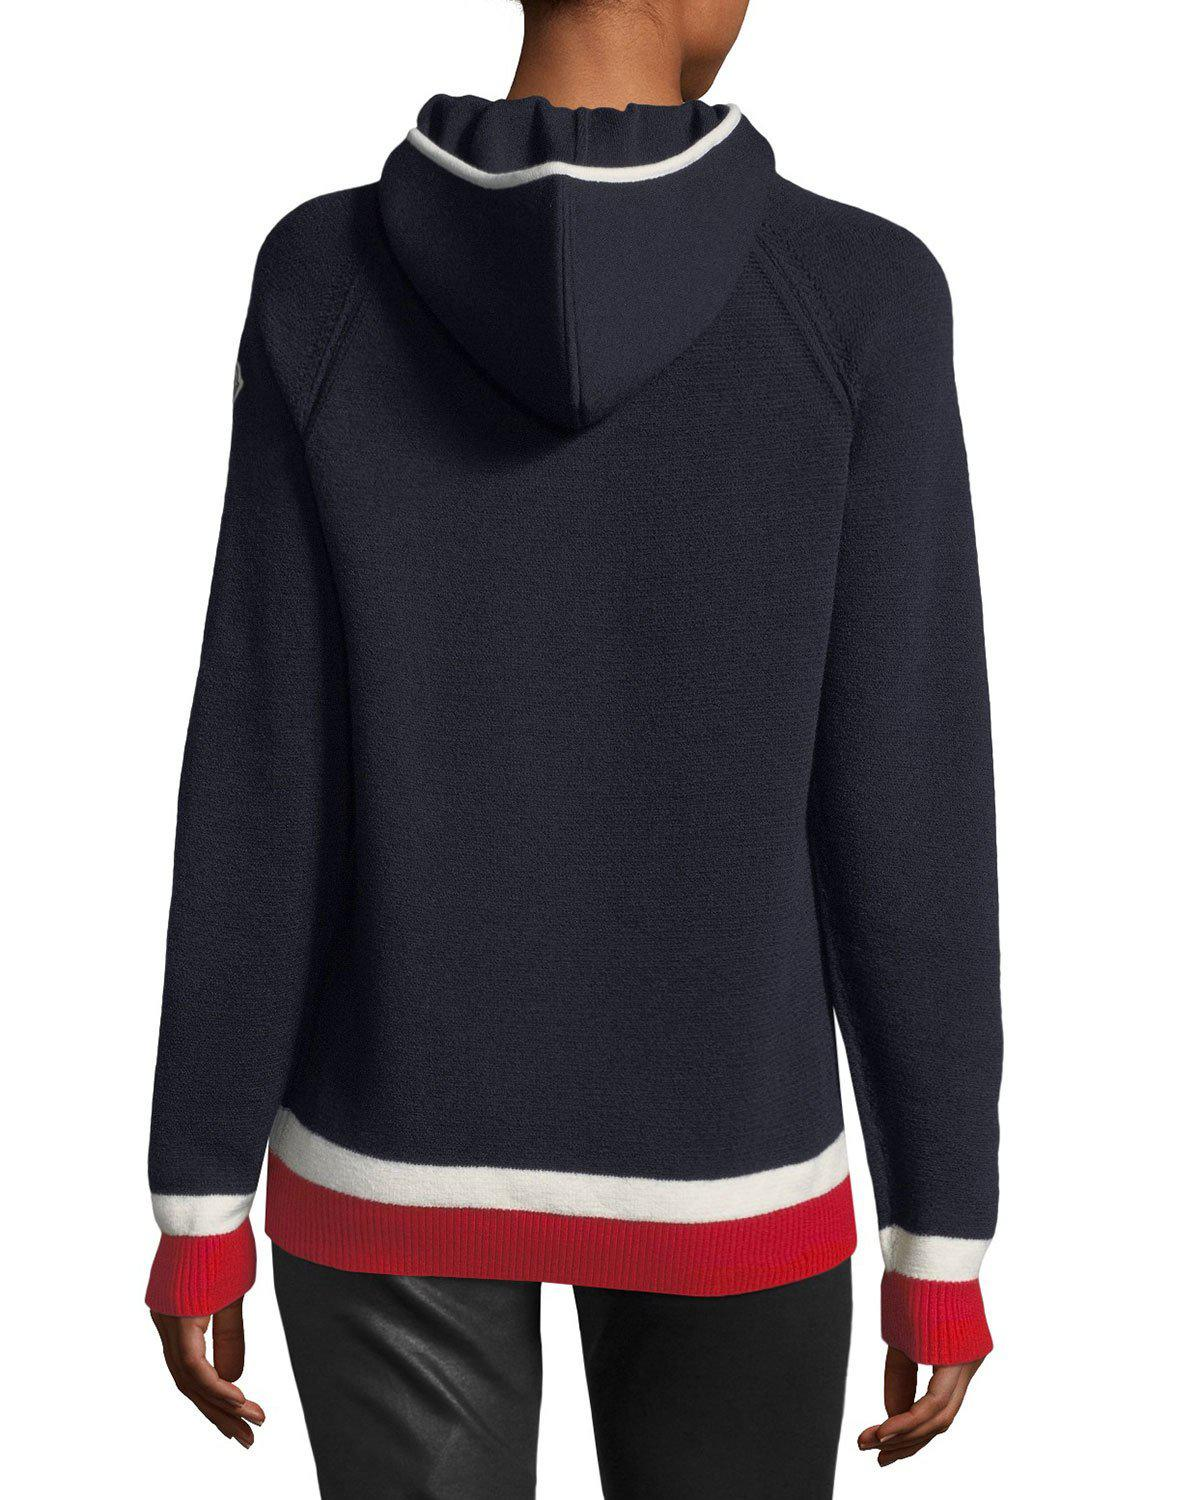 Moncler Maglione Tricot Argyle Hooded Pullover Sweater in Blue | Lyst